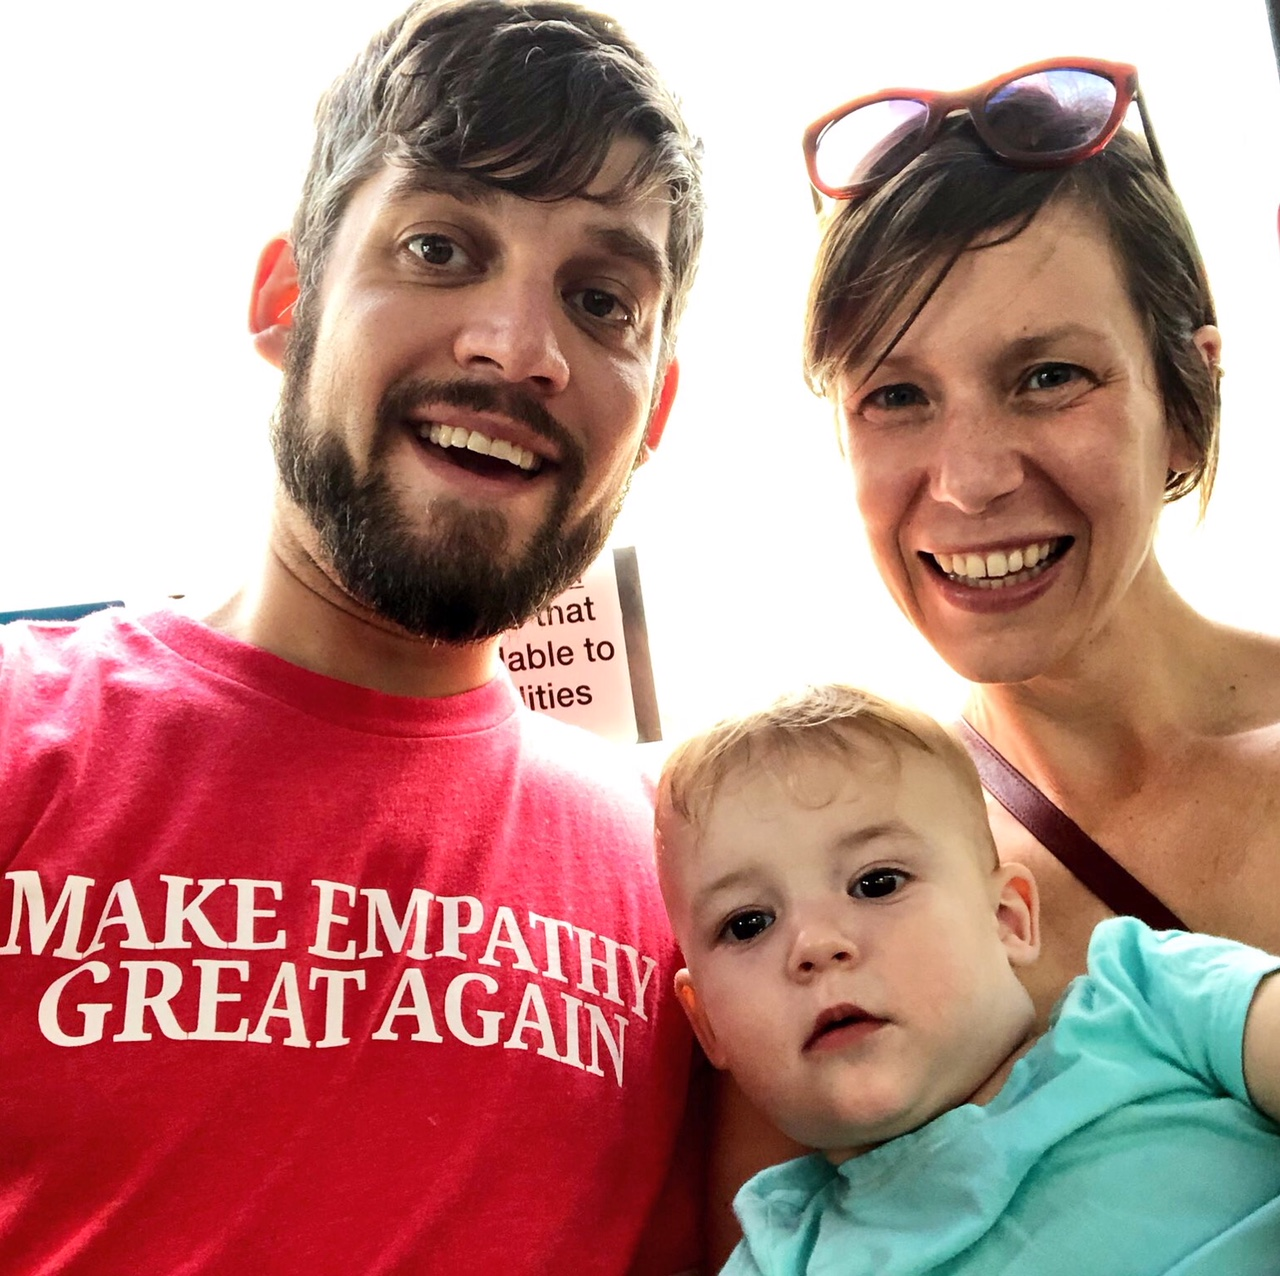 Woo-hoo! Here we are as a family protesting against white supremacy last Sunday in DC. Self-care has helped in both becoming parents and upping our game as politically activated human beings over this past year. Both activities have been been hugely rewarding and require a lot of self-care replenishment to stay vital and connected.